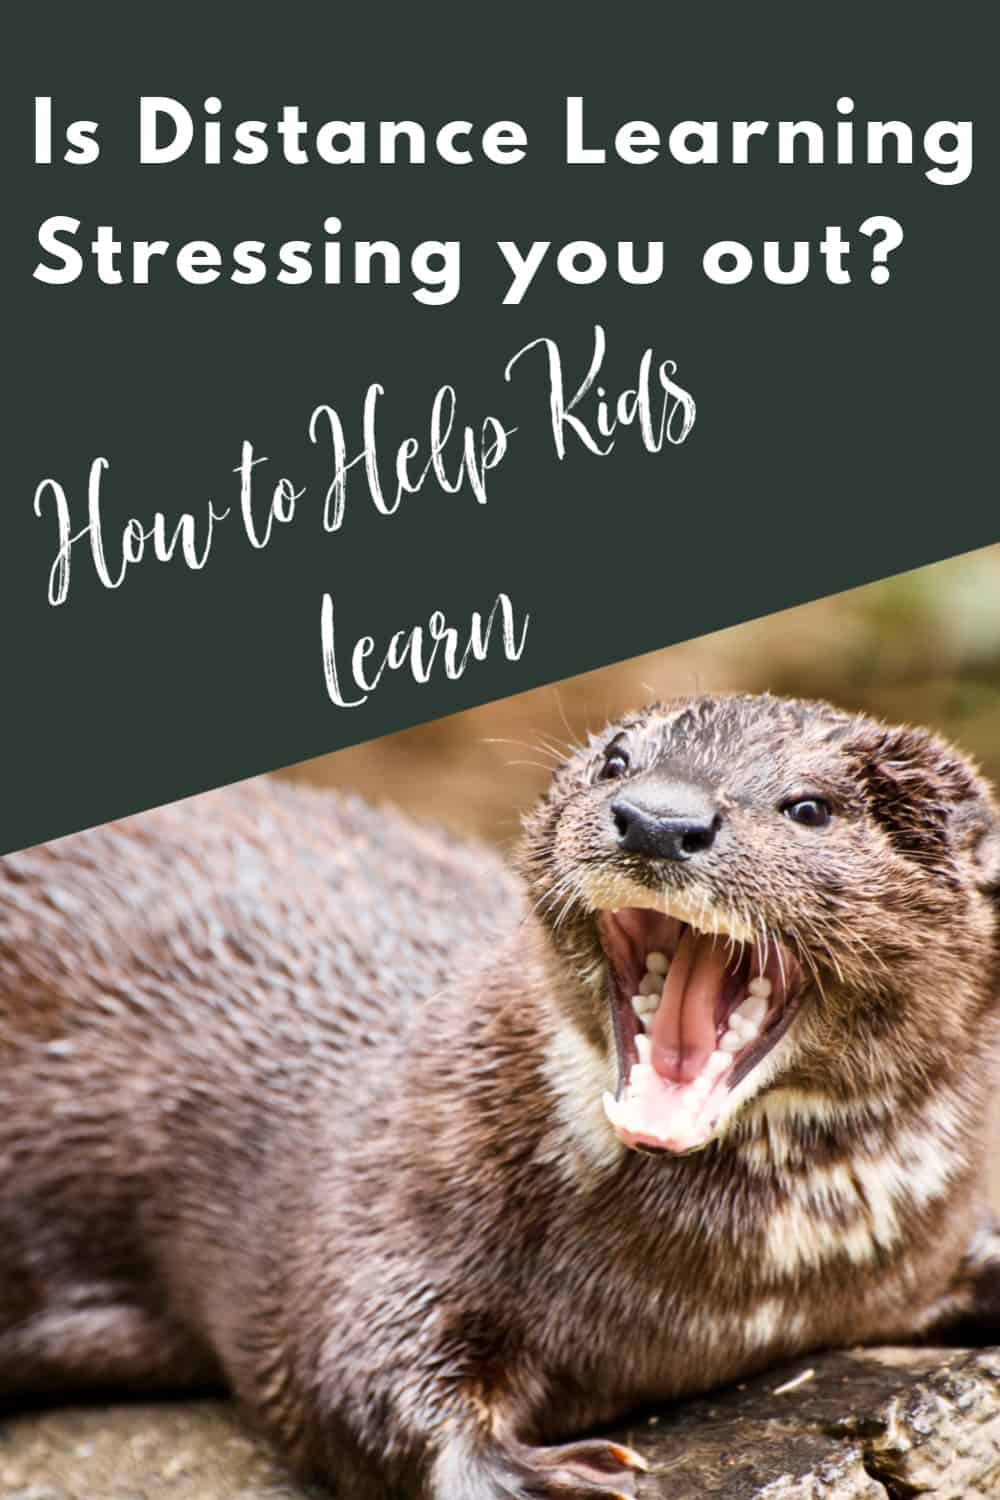 How to Help Kids Learn - Don't let distance learning stress you out with these simple tips to help kids learn.